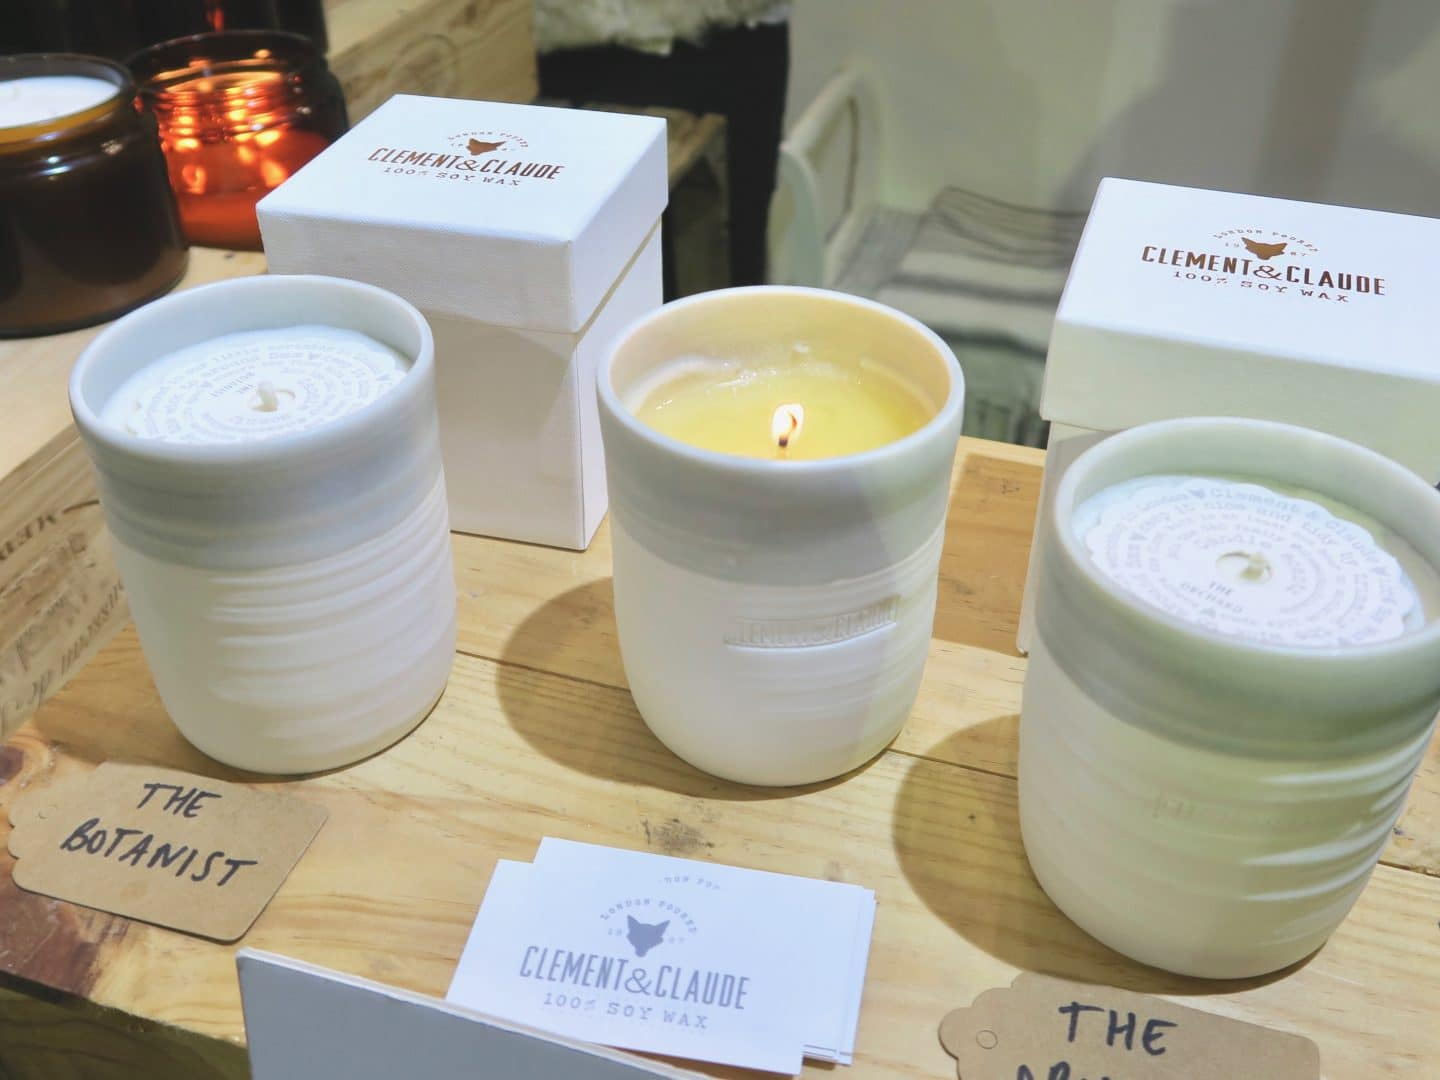 Clement and Claude soy candles   Curiously Conscious